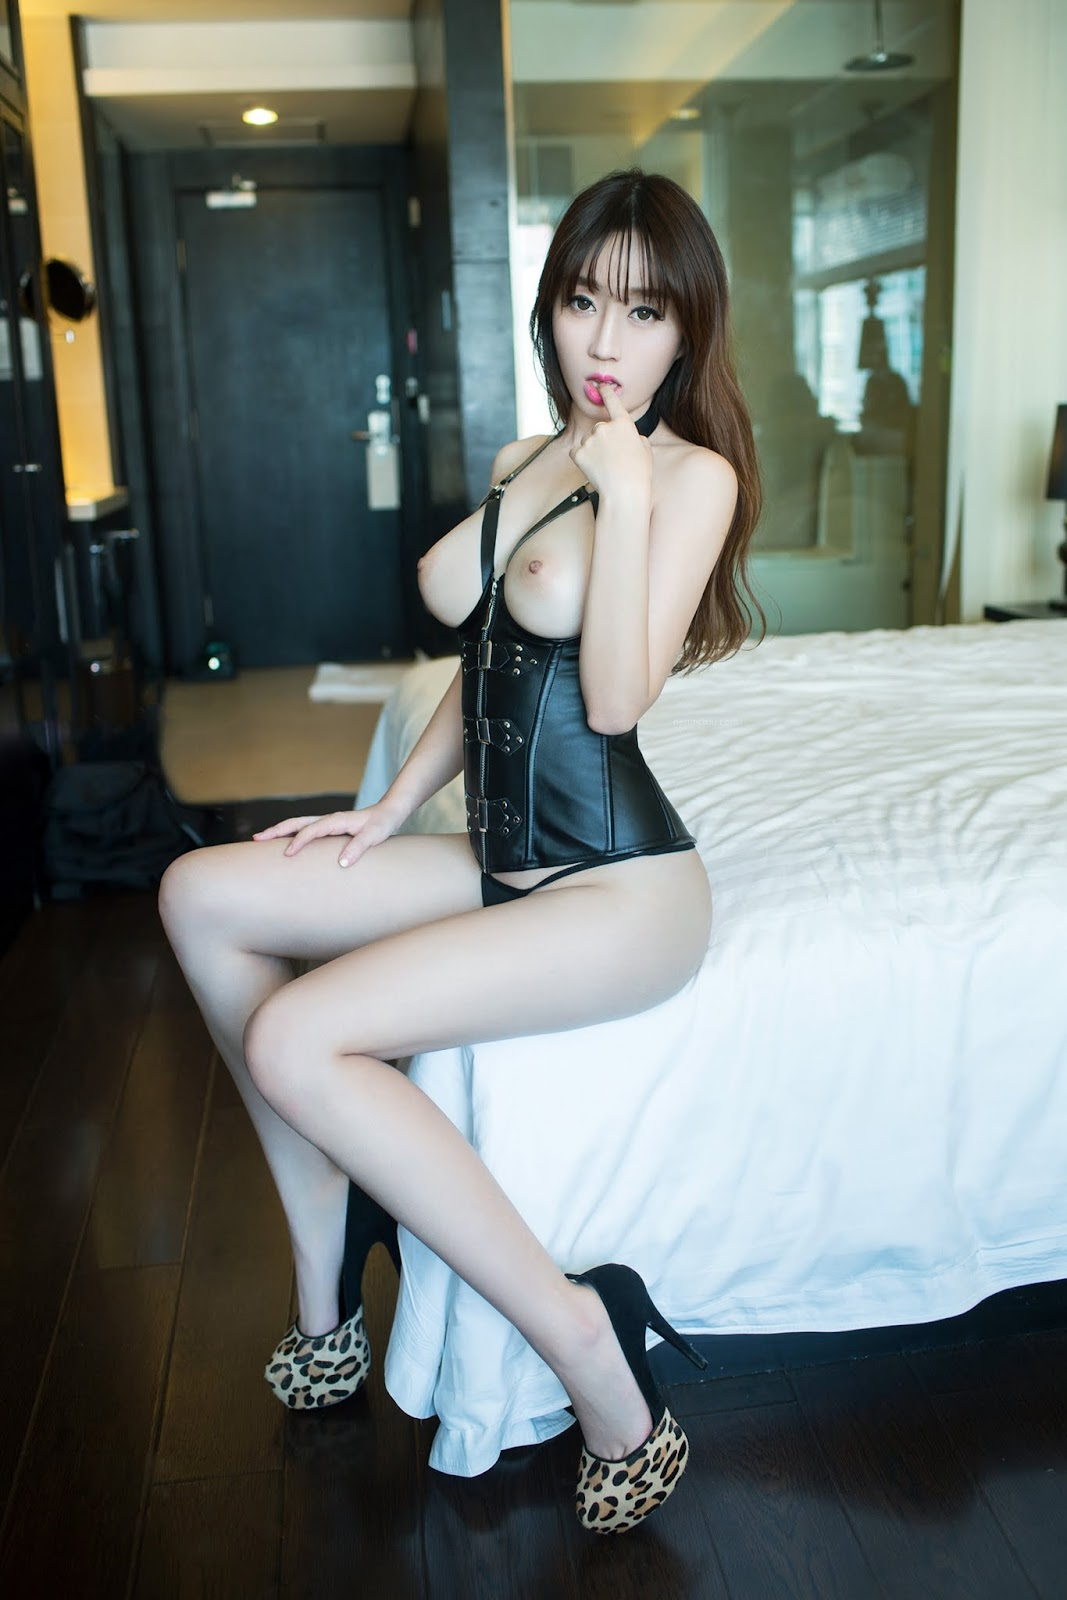 1%2B%252810%2529 - Hot Sexy TUIGIRL NO.43 Model Asian